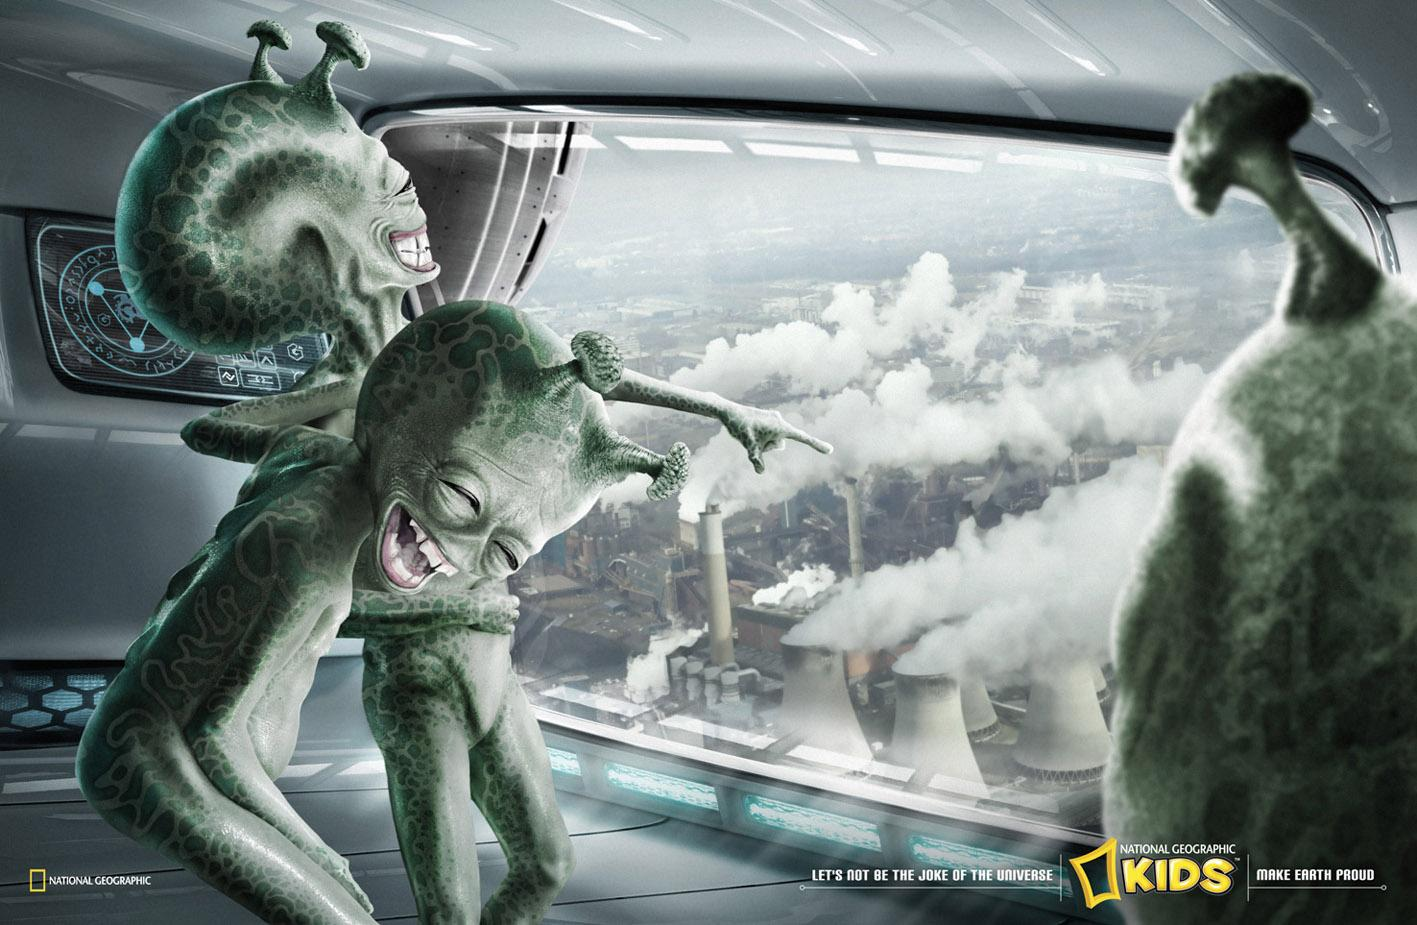 National Geographic Print Ad -  Air Pollution